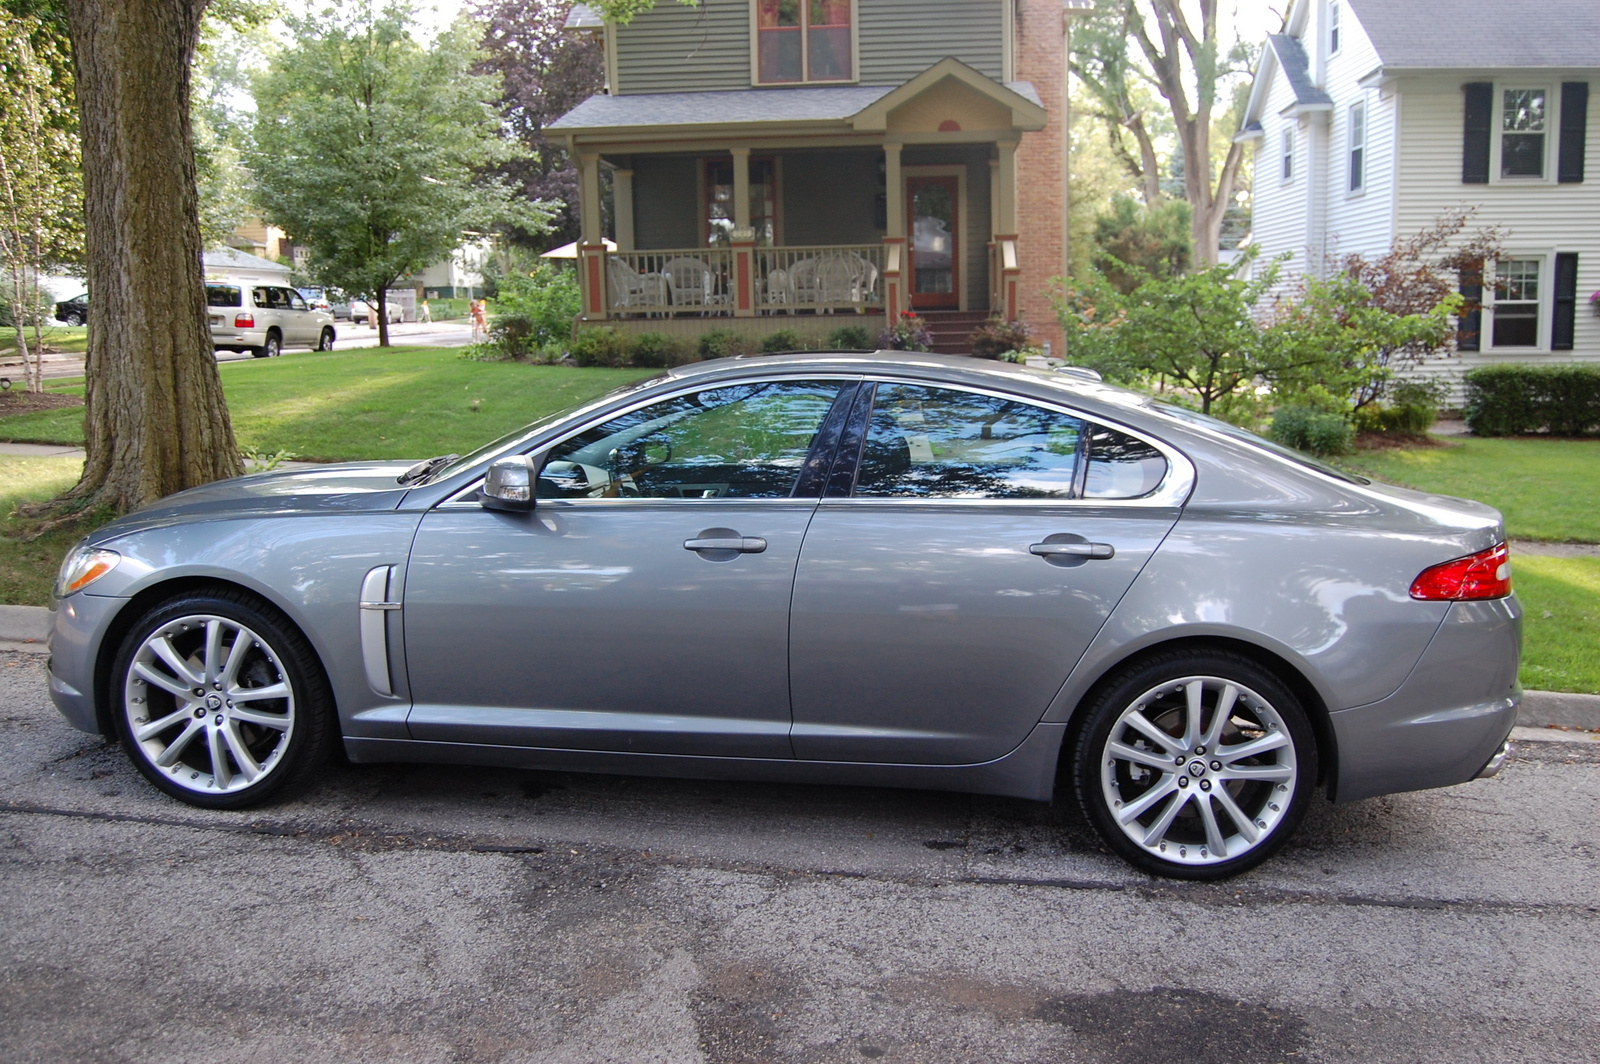 jaguar xf 2009 - photo #20